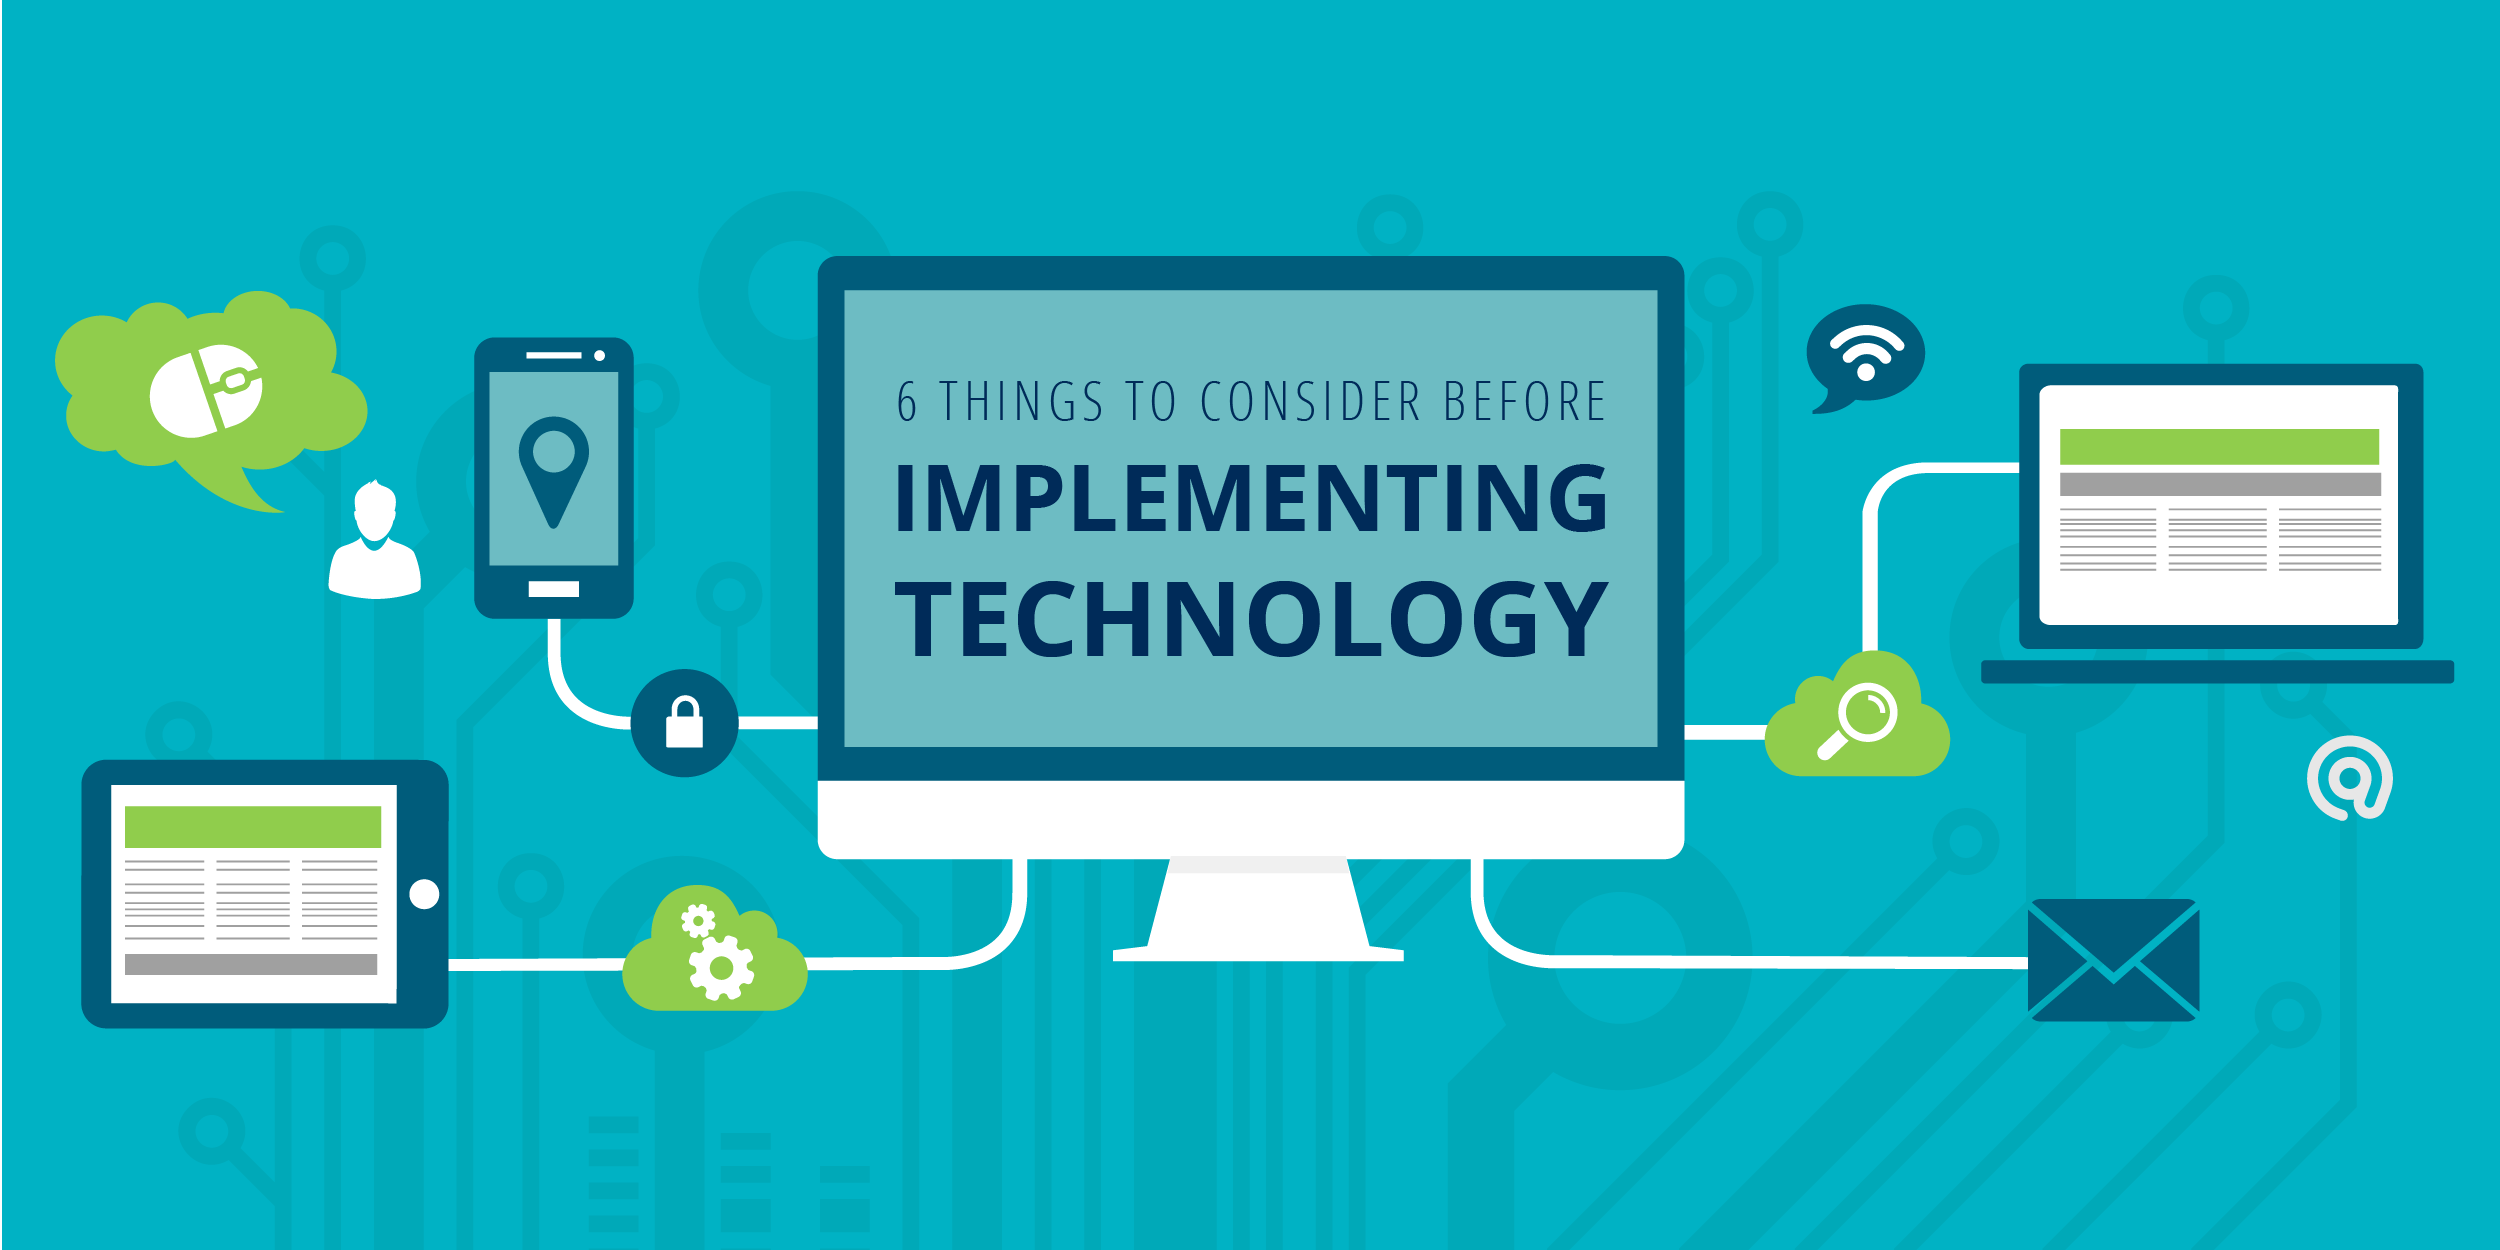 6 Things to Consider Before Implementing Technology